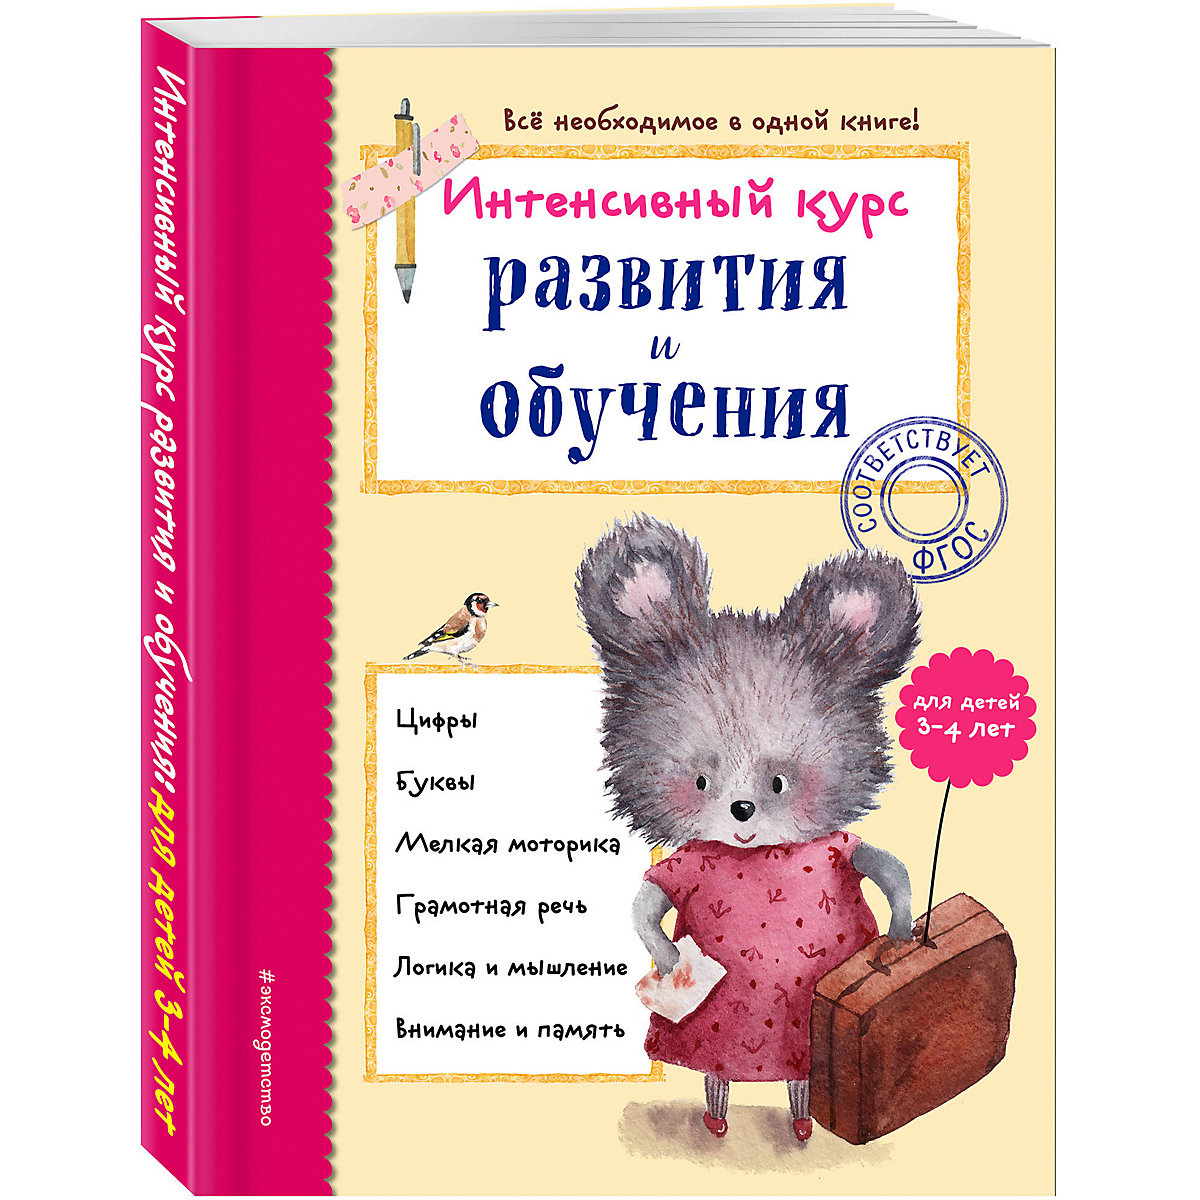 Books EKSMO 9556083 Children Education Encyclopedia Alphabet Dictionary Book For Baby MTpromo